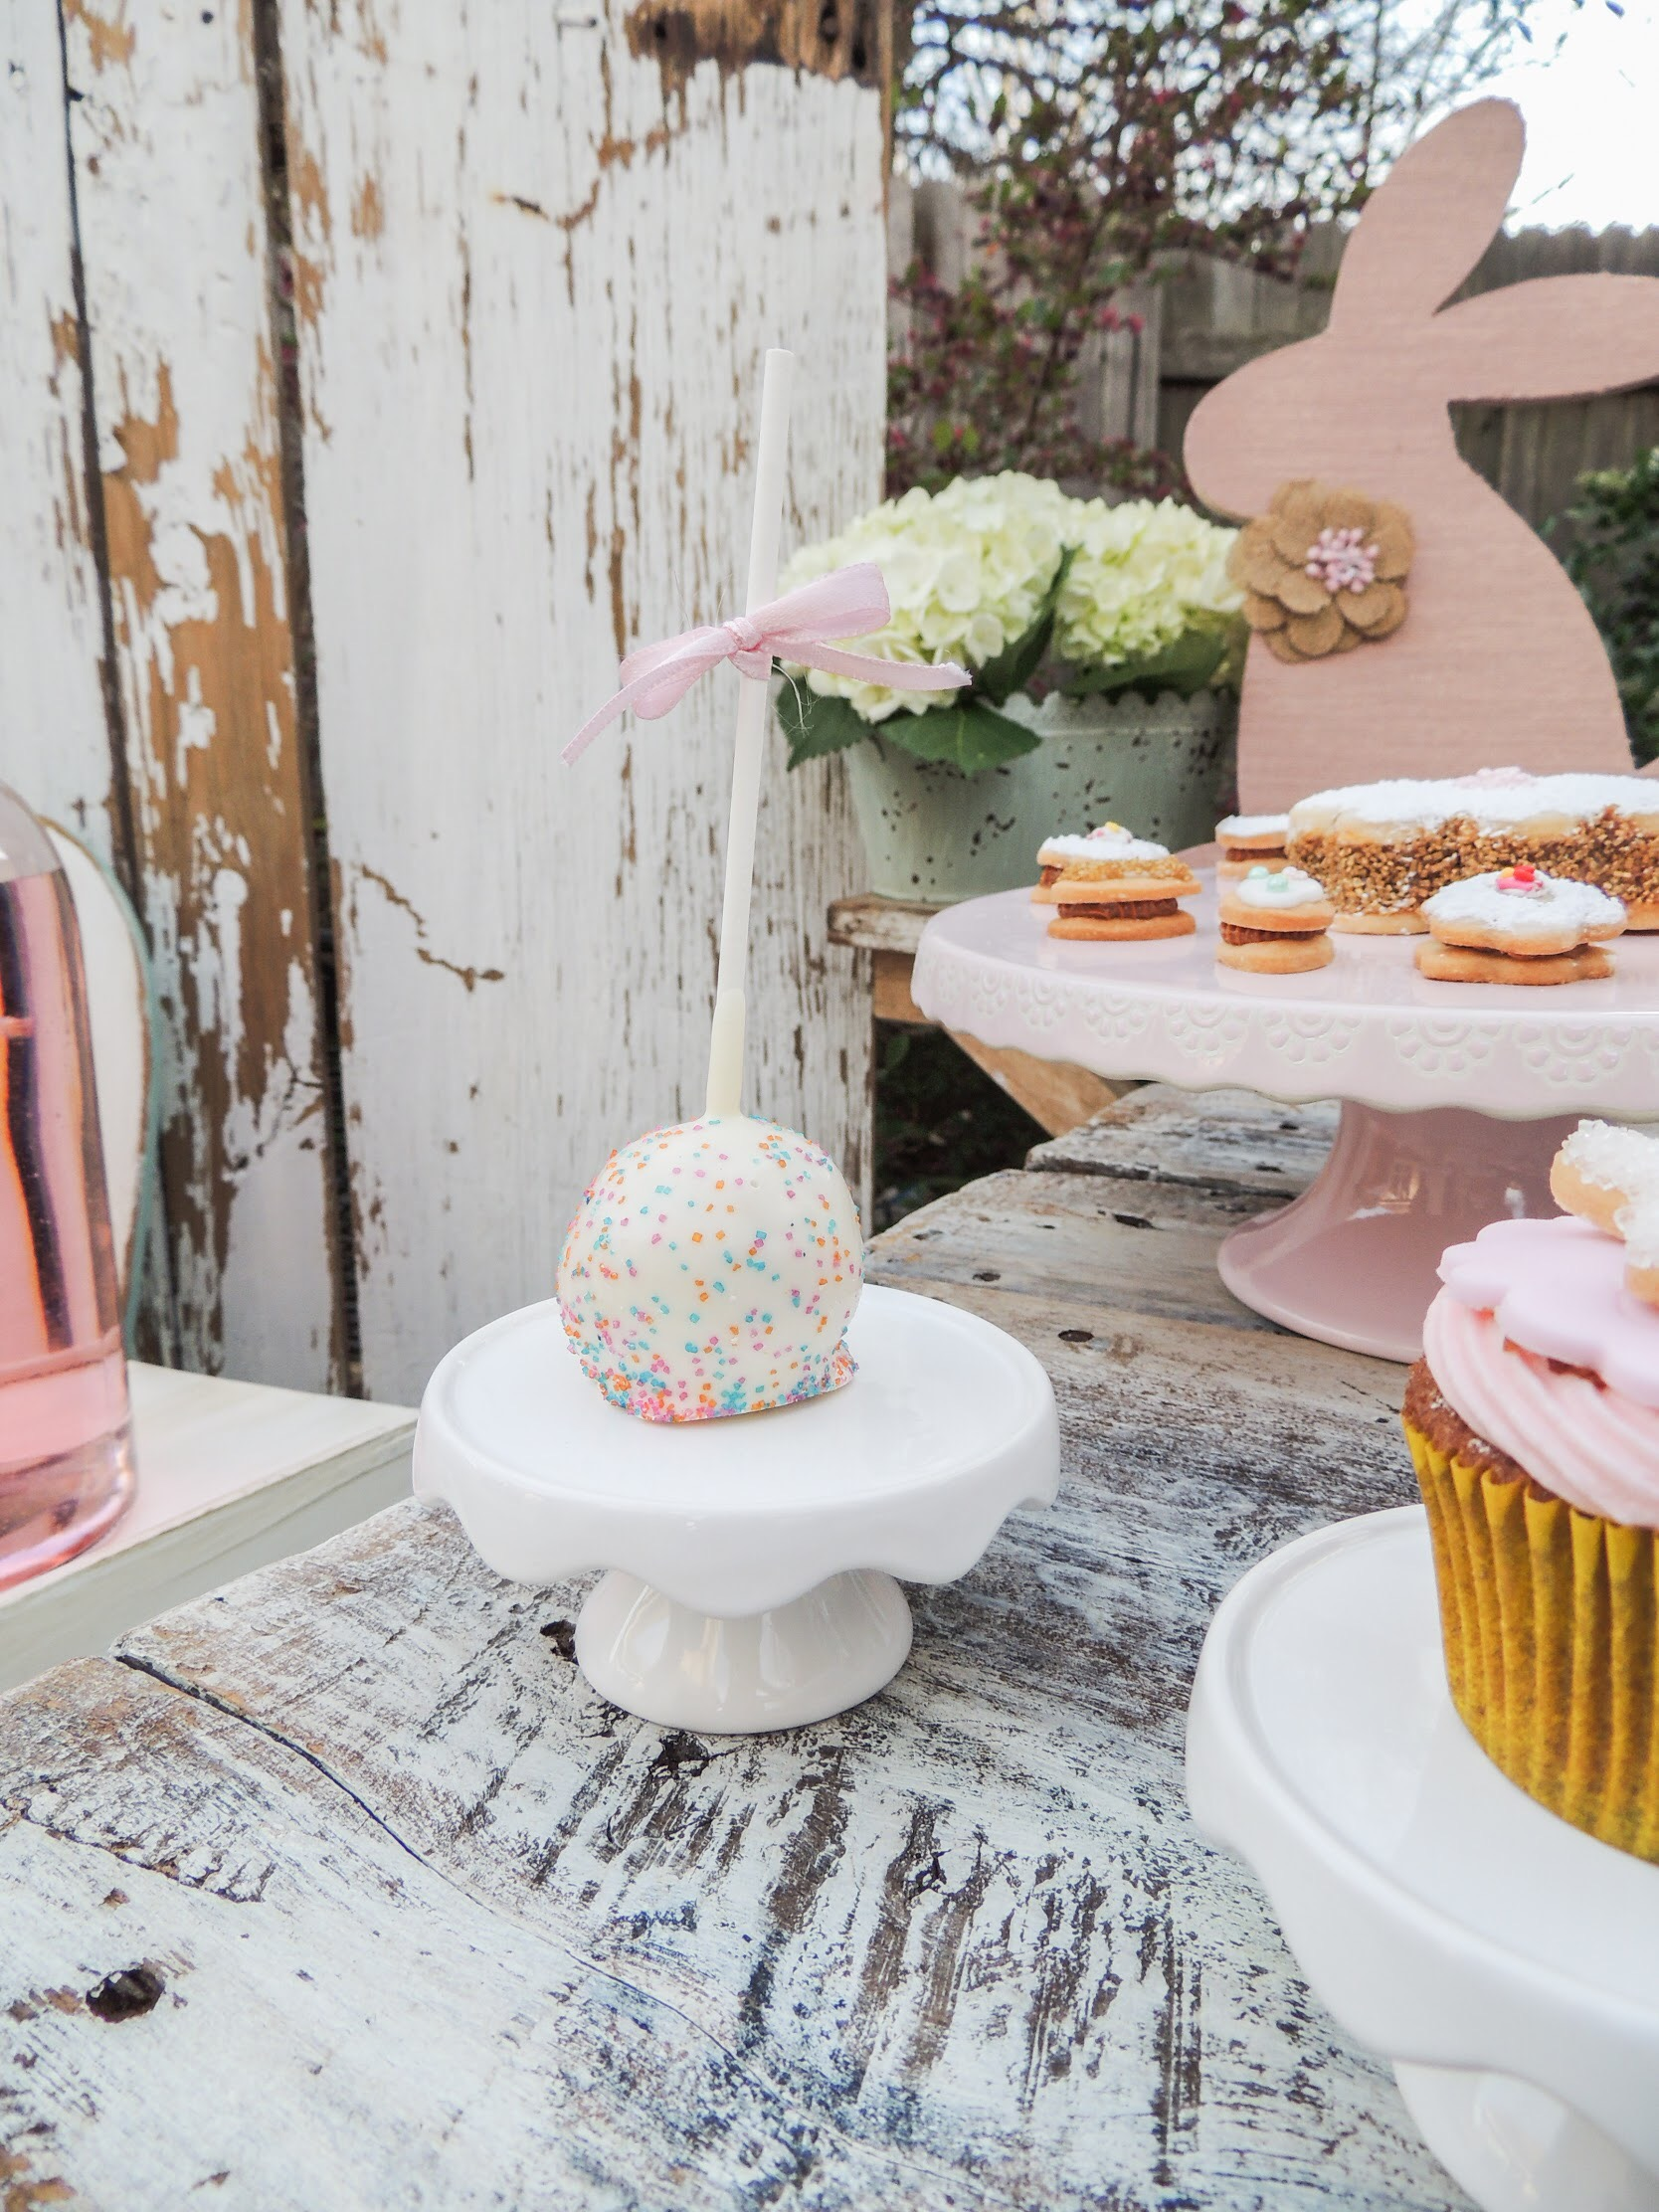 Love this sparkly cake pop, so fun for this Easter party. As seen on Mint Event Design www.minteventdesign.com #eastertable #easterdecor #easterparty #partyideas #easterideas #cakepop